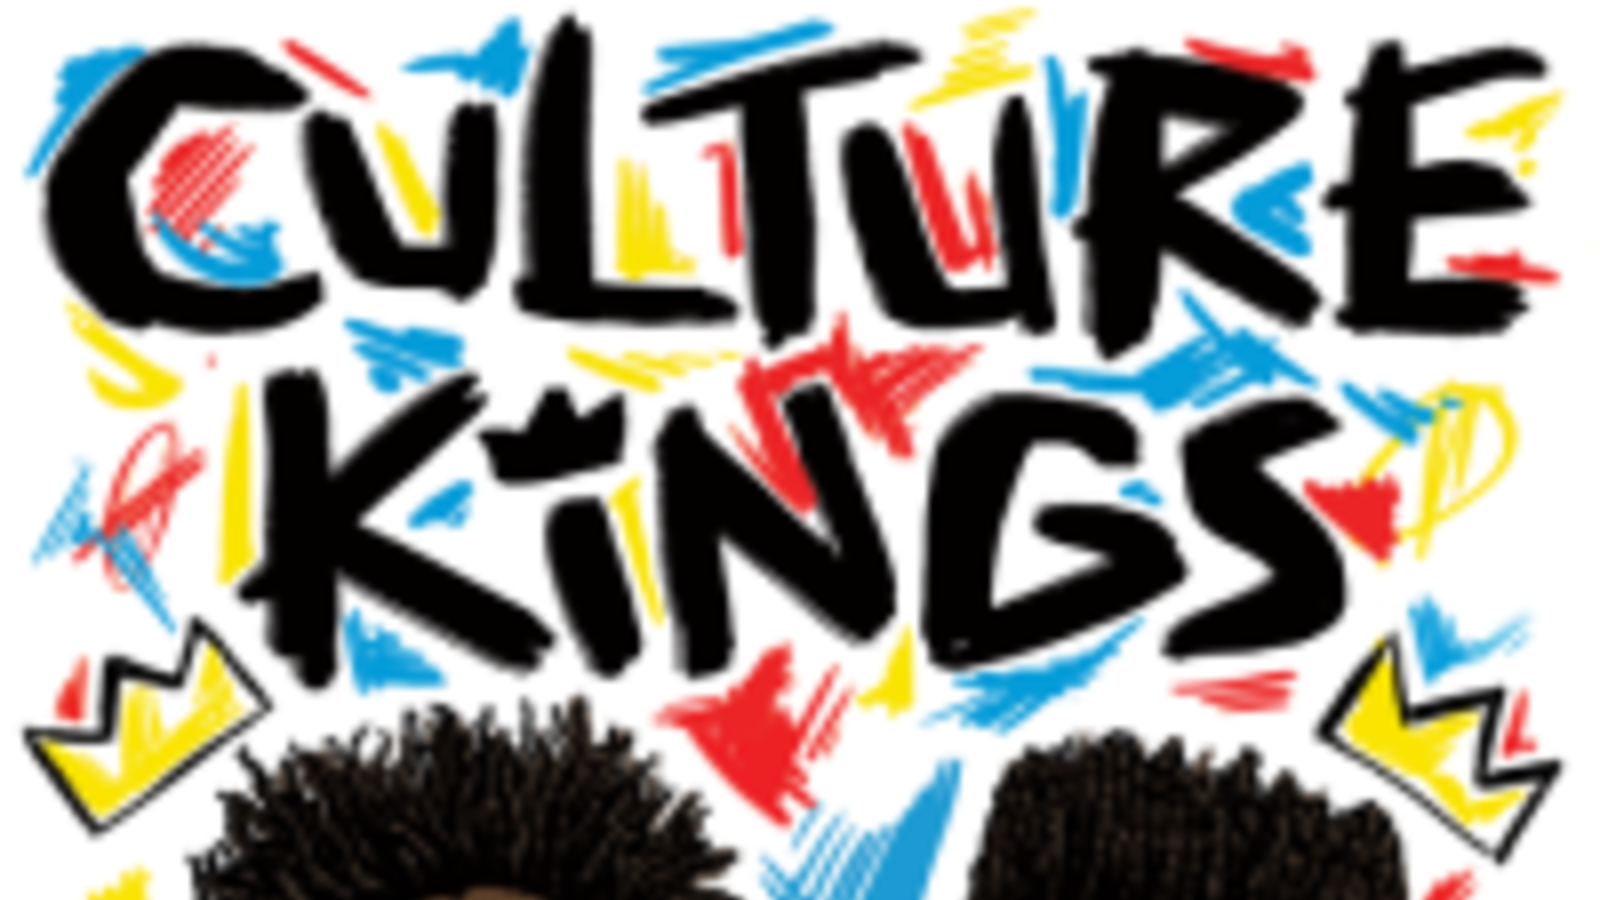 About Culture Kings